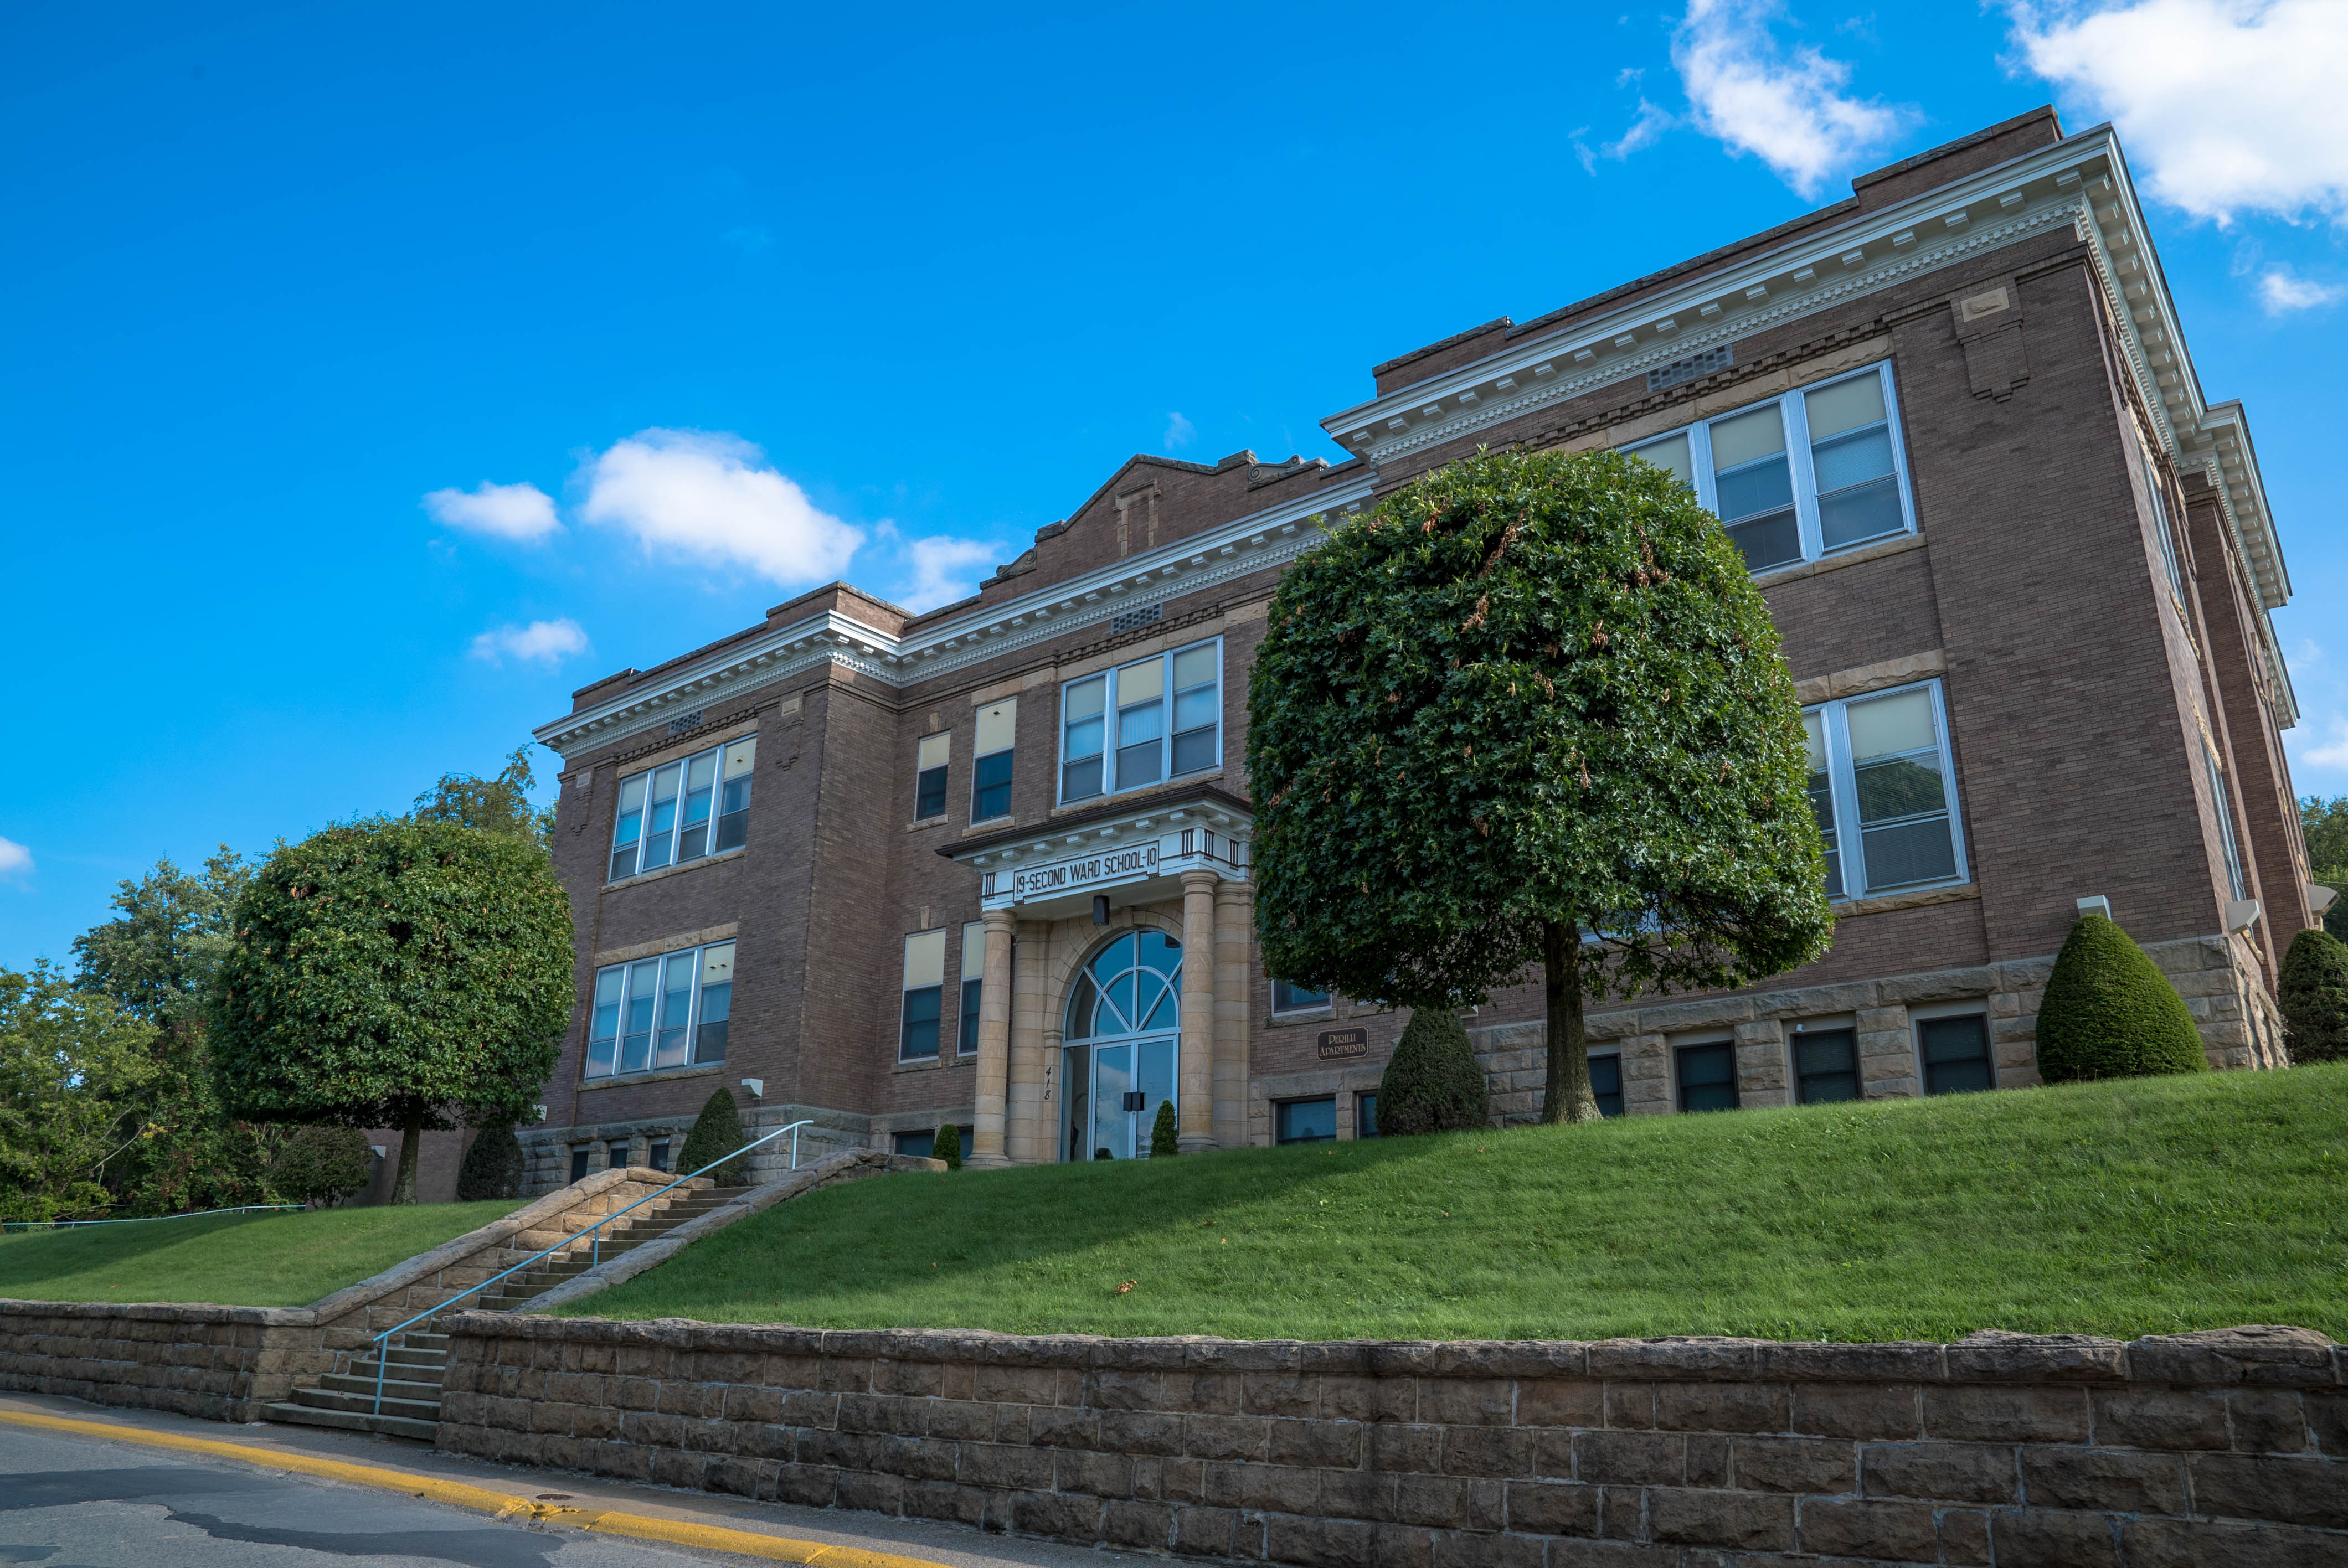 Perilli apartments quality morgantown apartments and townhomes for One bedroom apartments morgantown wv